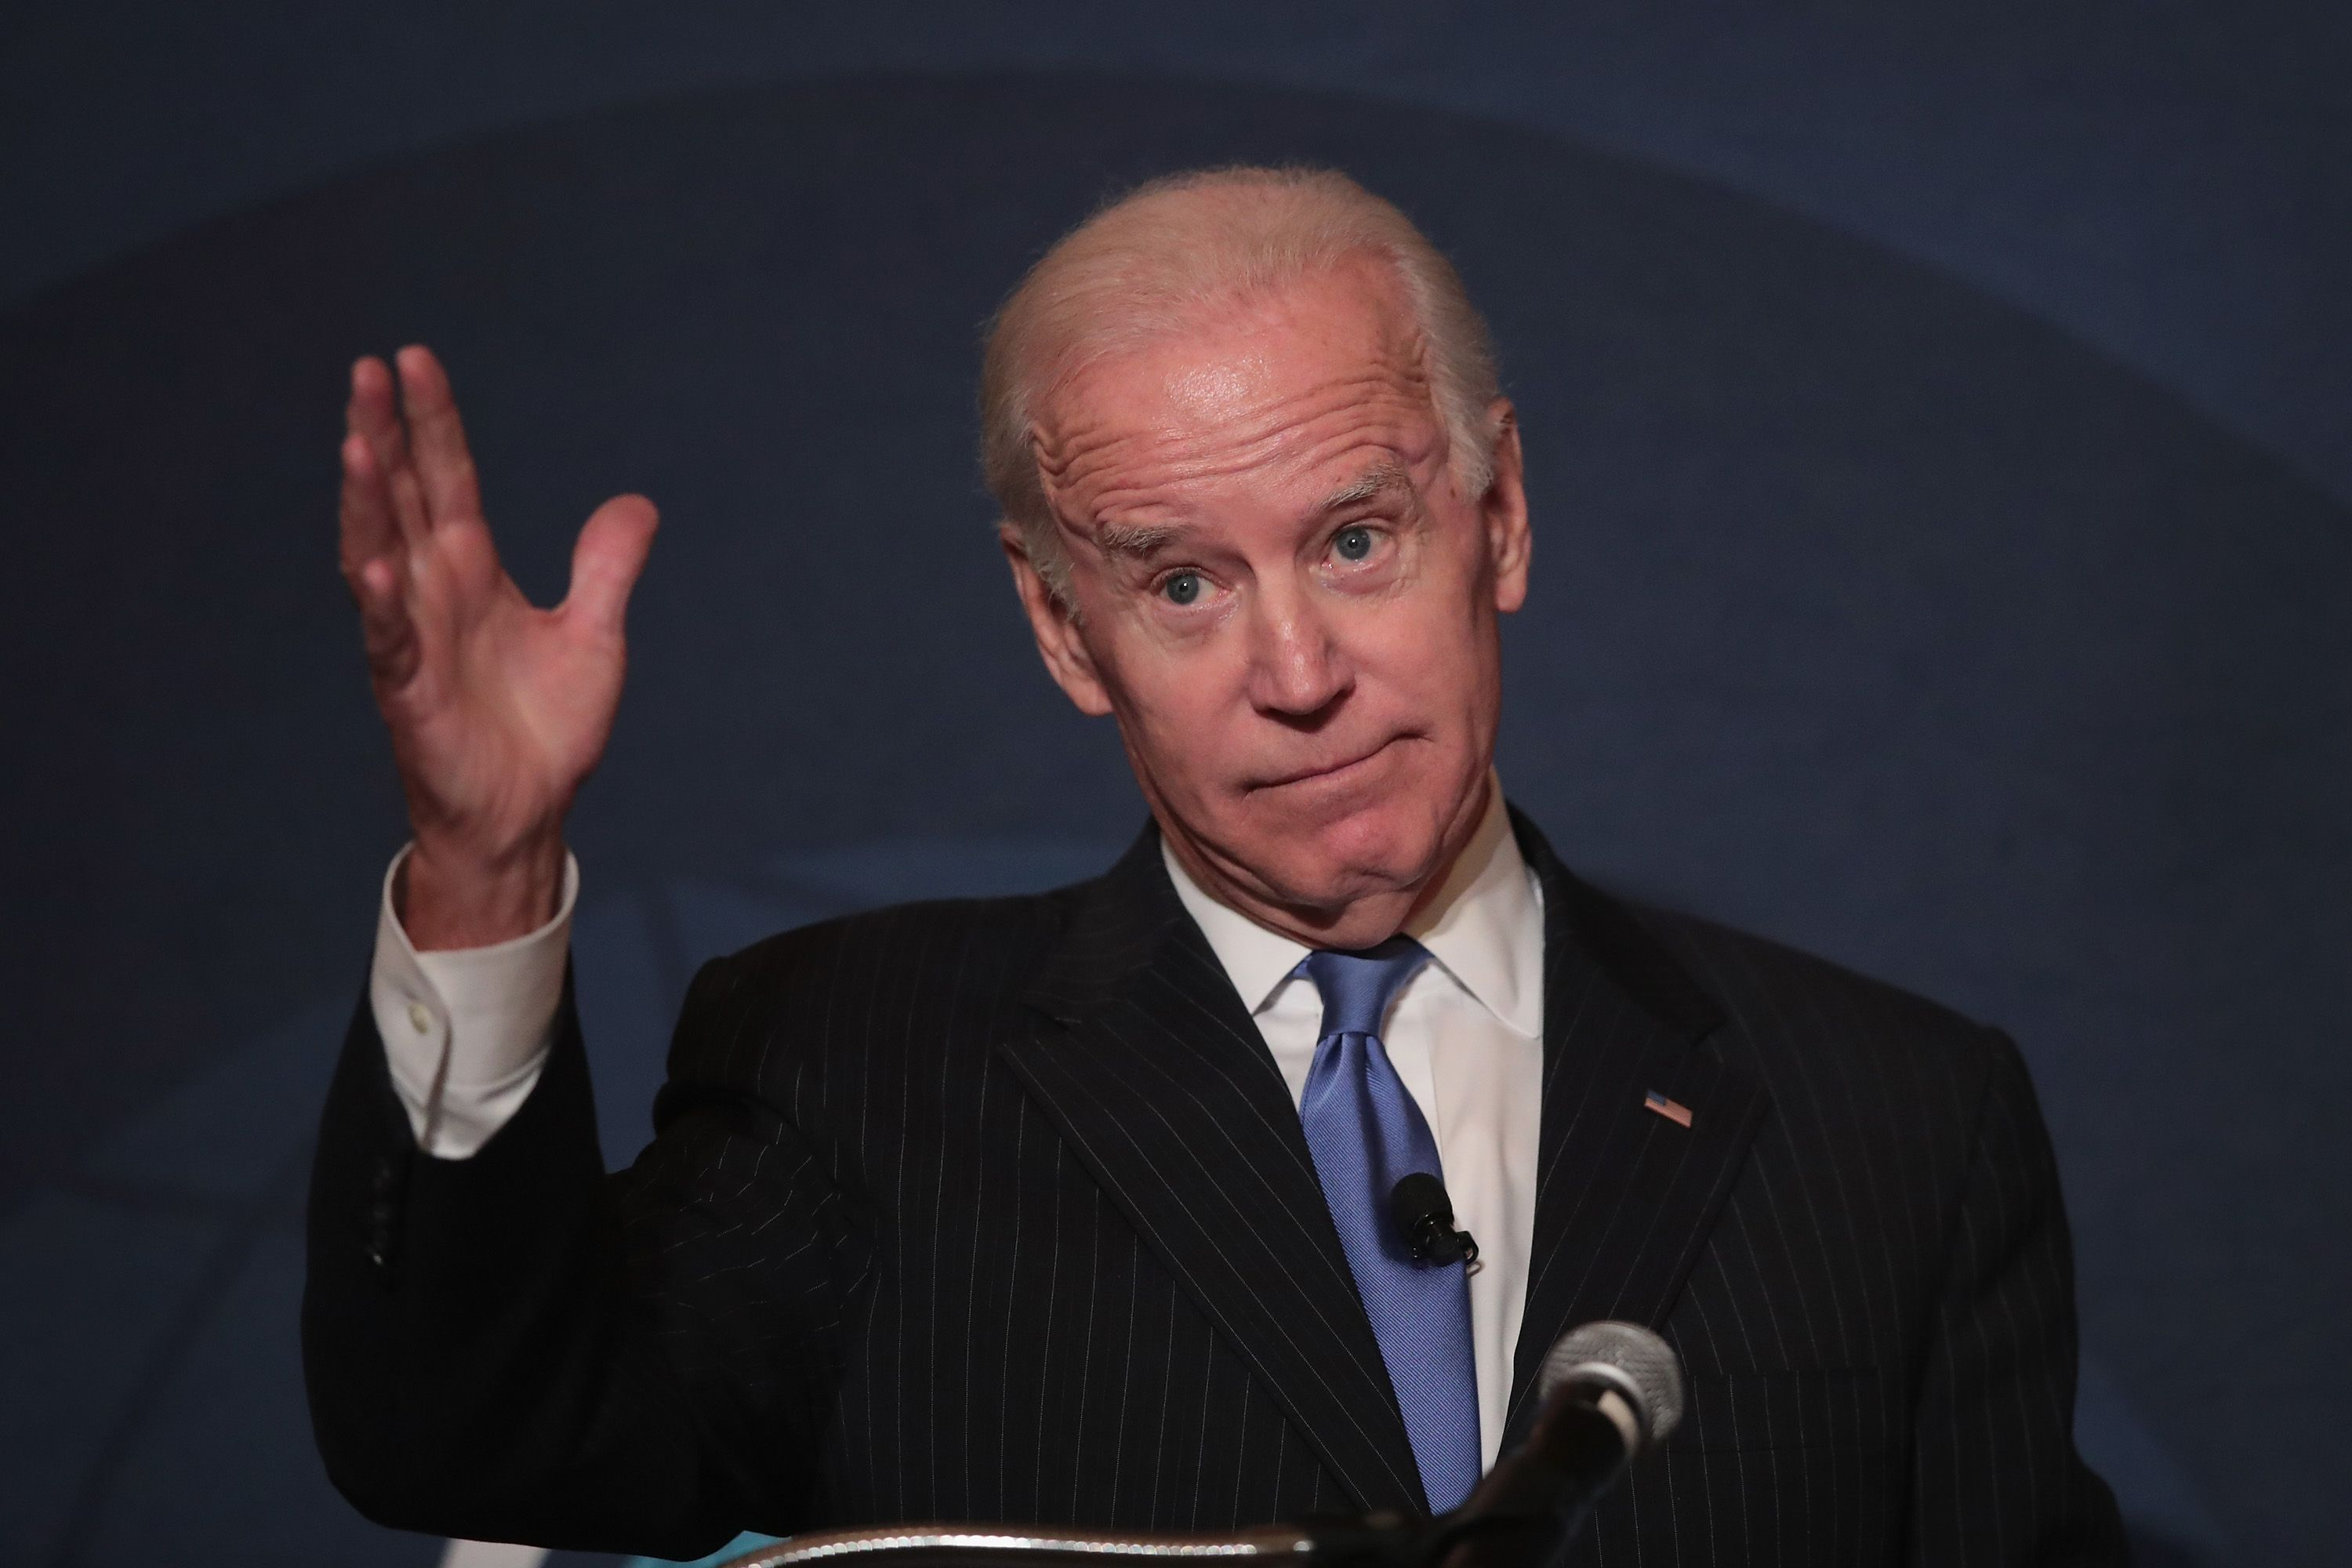 Just a Roundup of Joe Biden's Questionable Advice to Young Girls